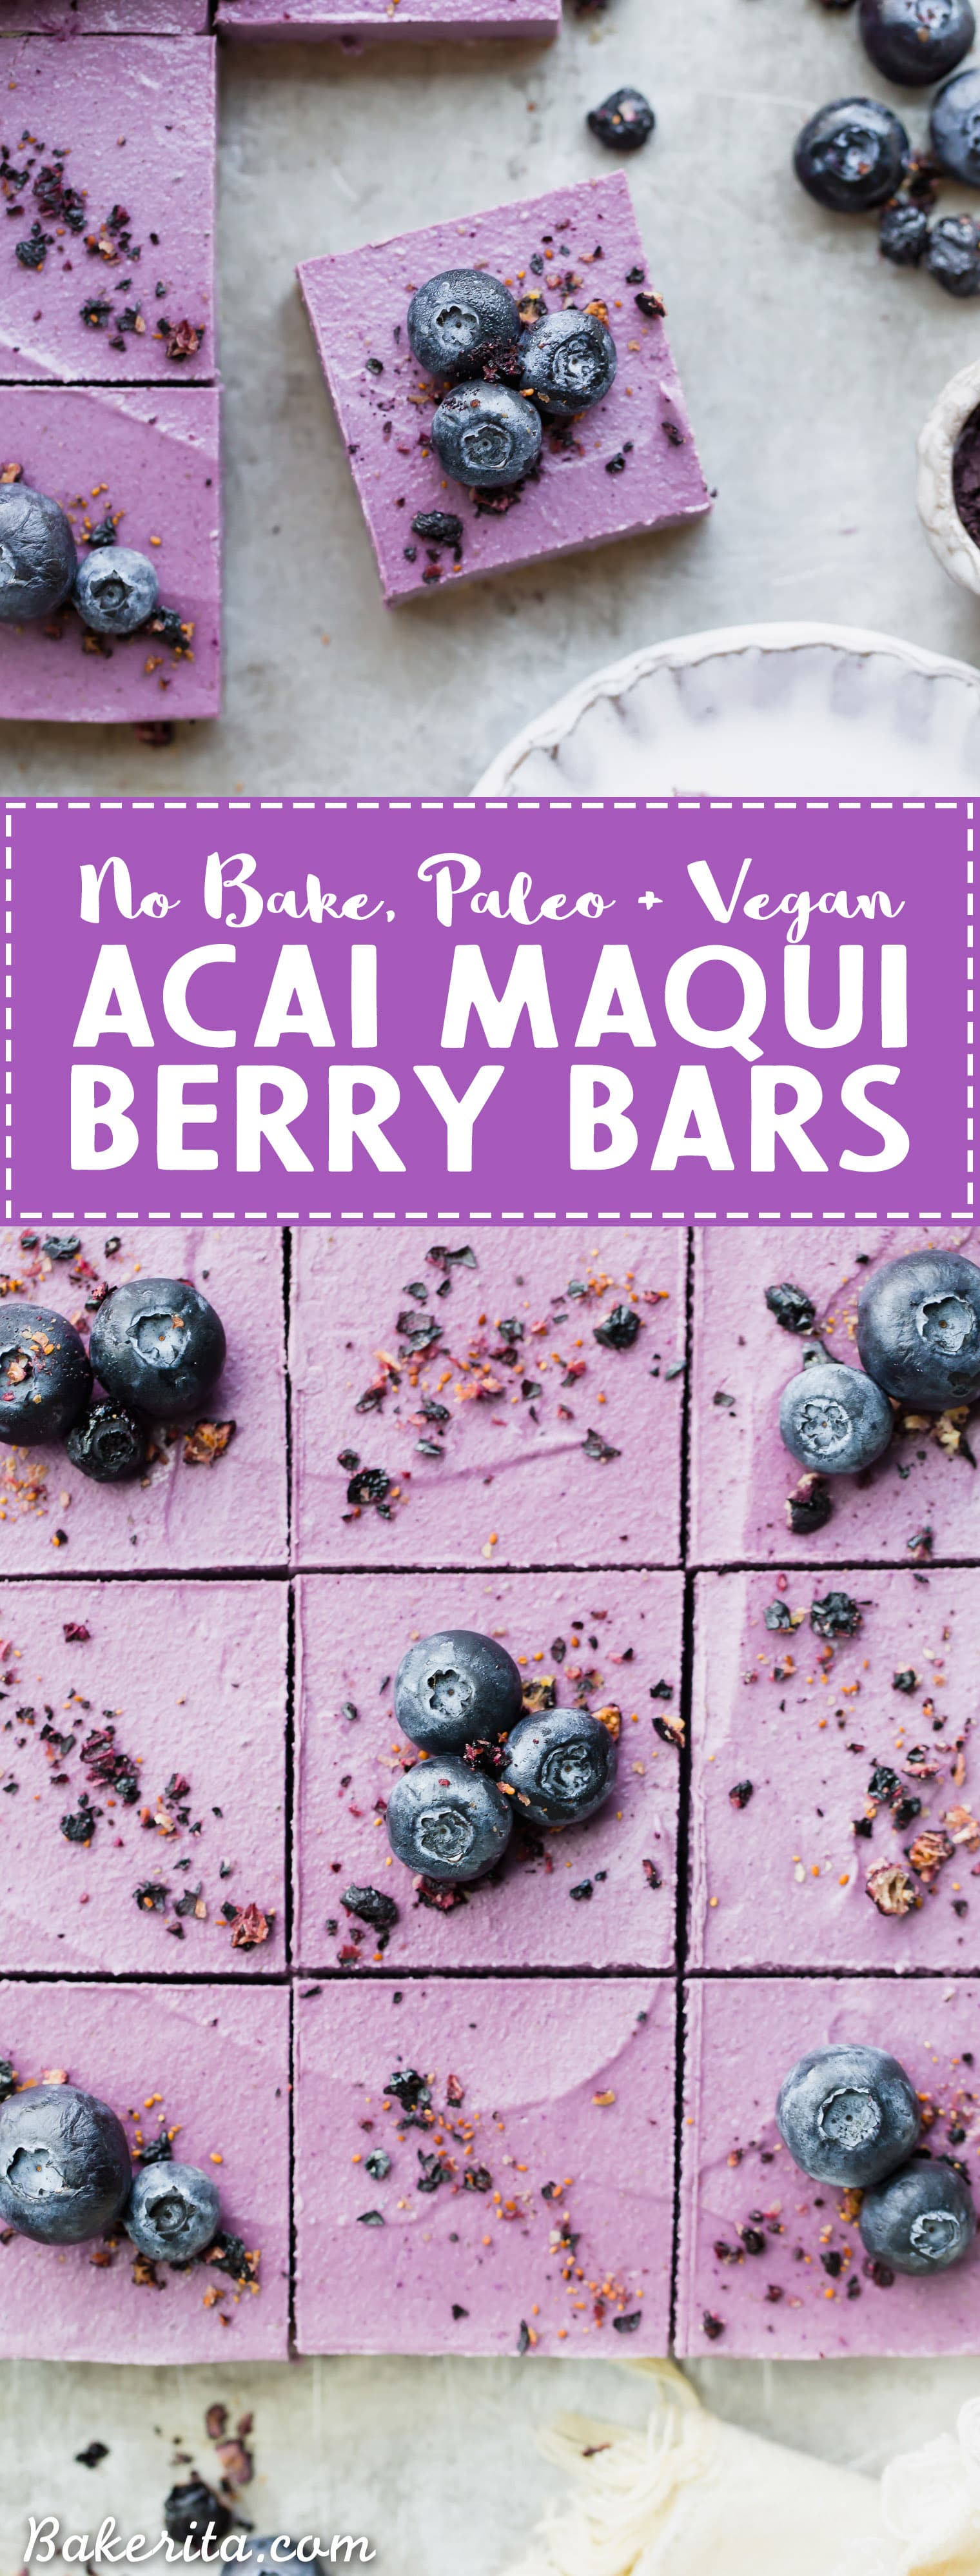 These creamy No-Bake Acai Maqui Berry Bars are full of antioxidants from acai + maqui berry powder - it's a punch of superfood power packed into a healthy and delicious dessert bar! These gluten-free, paleo and vegan bars are so refreshing - no baking necessary.